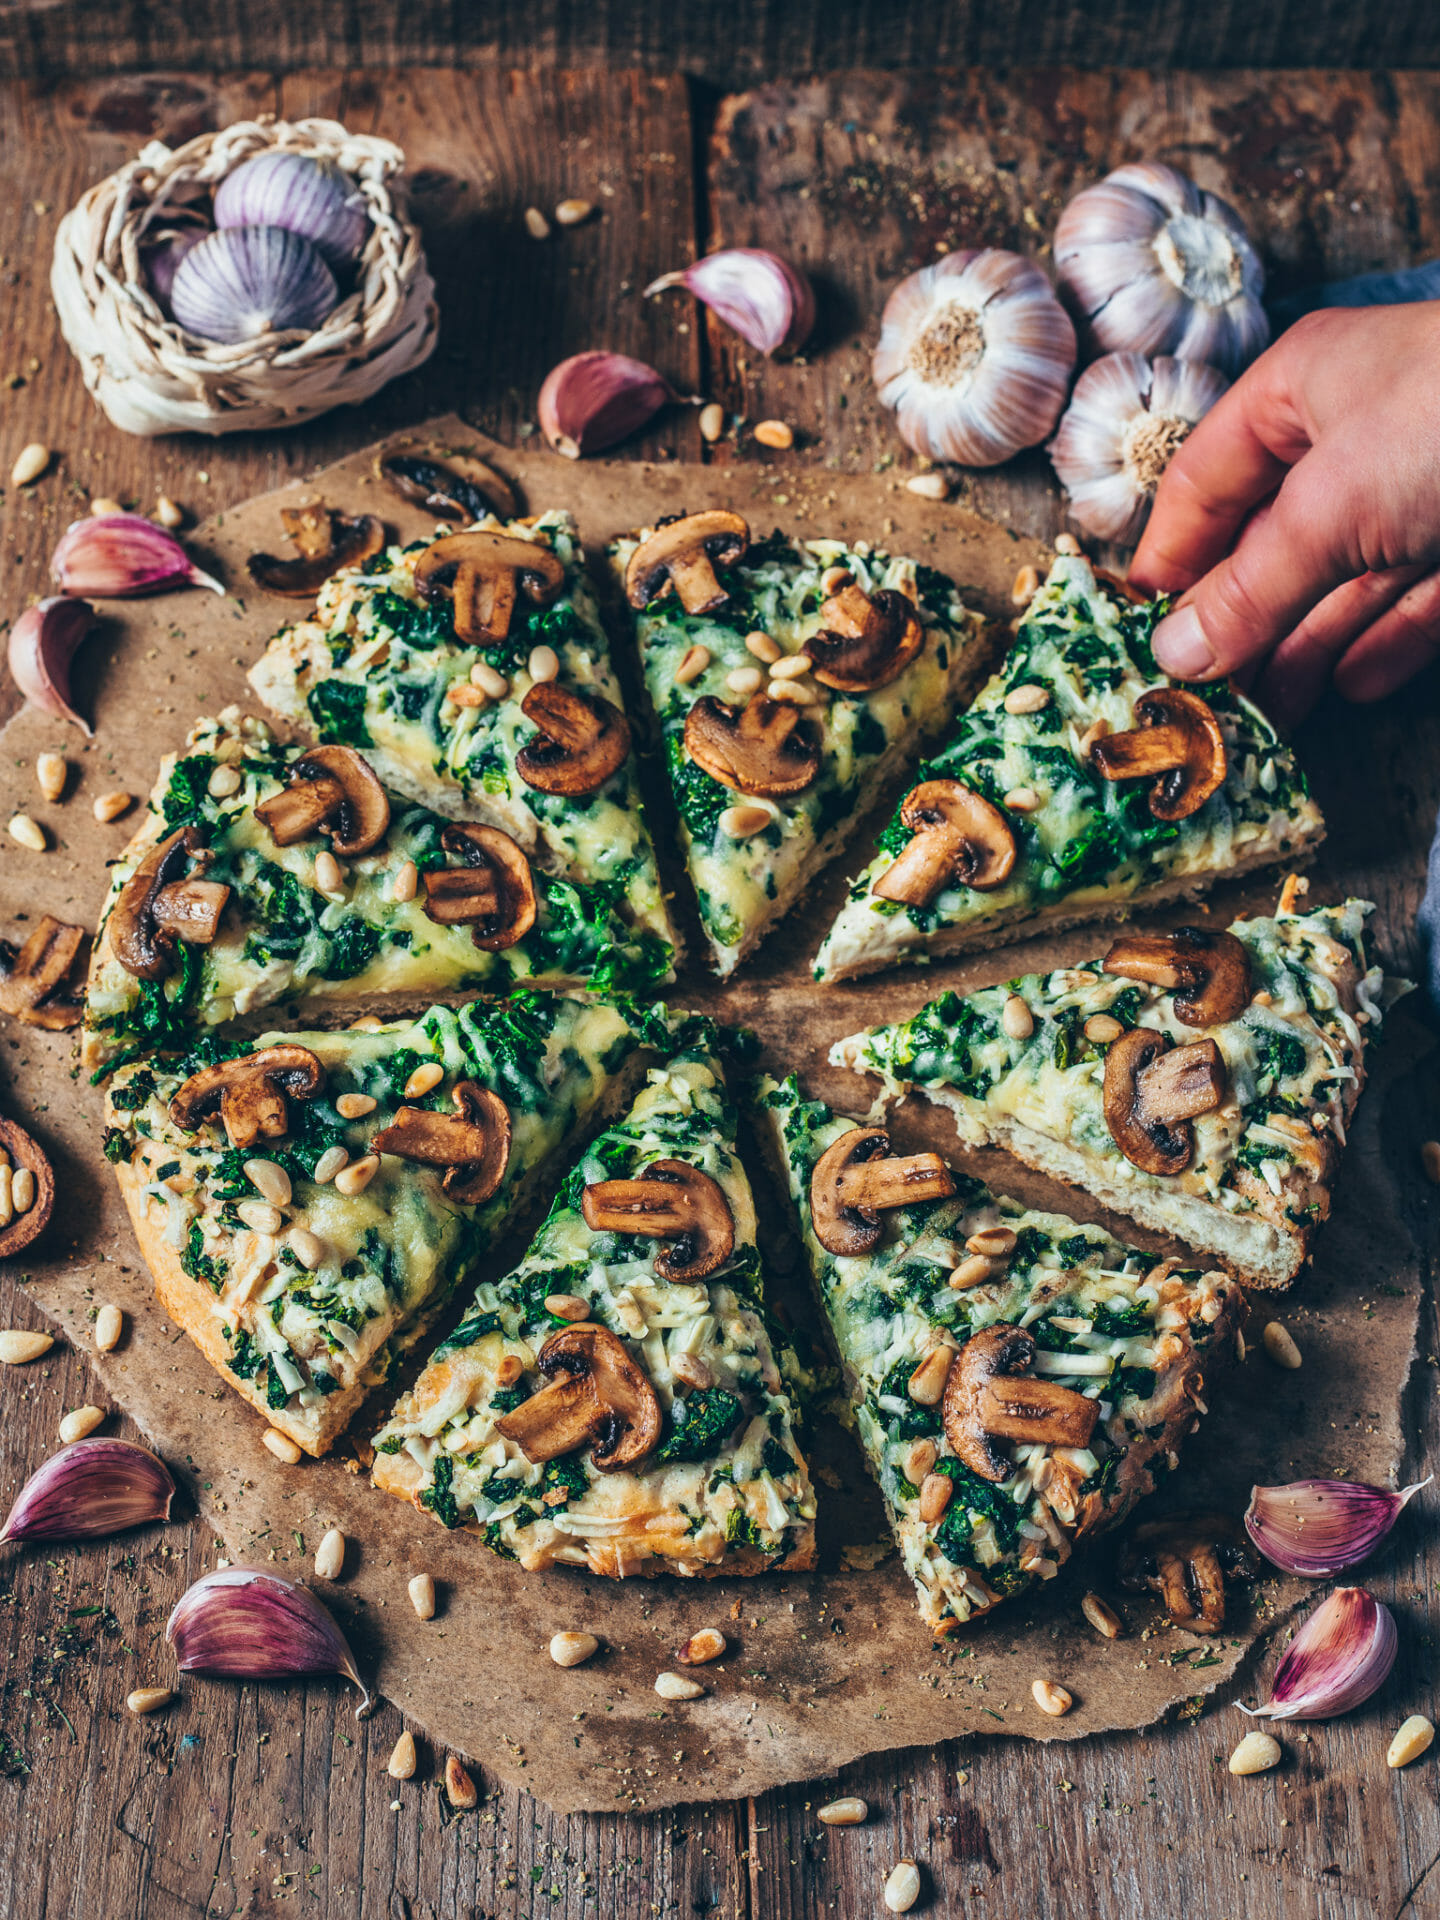 garlic mushroom and spinach pizza